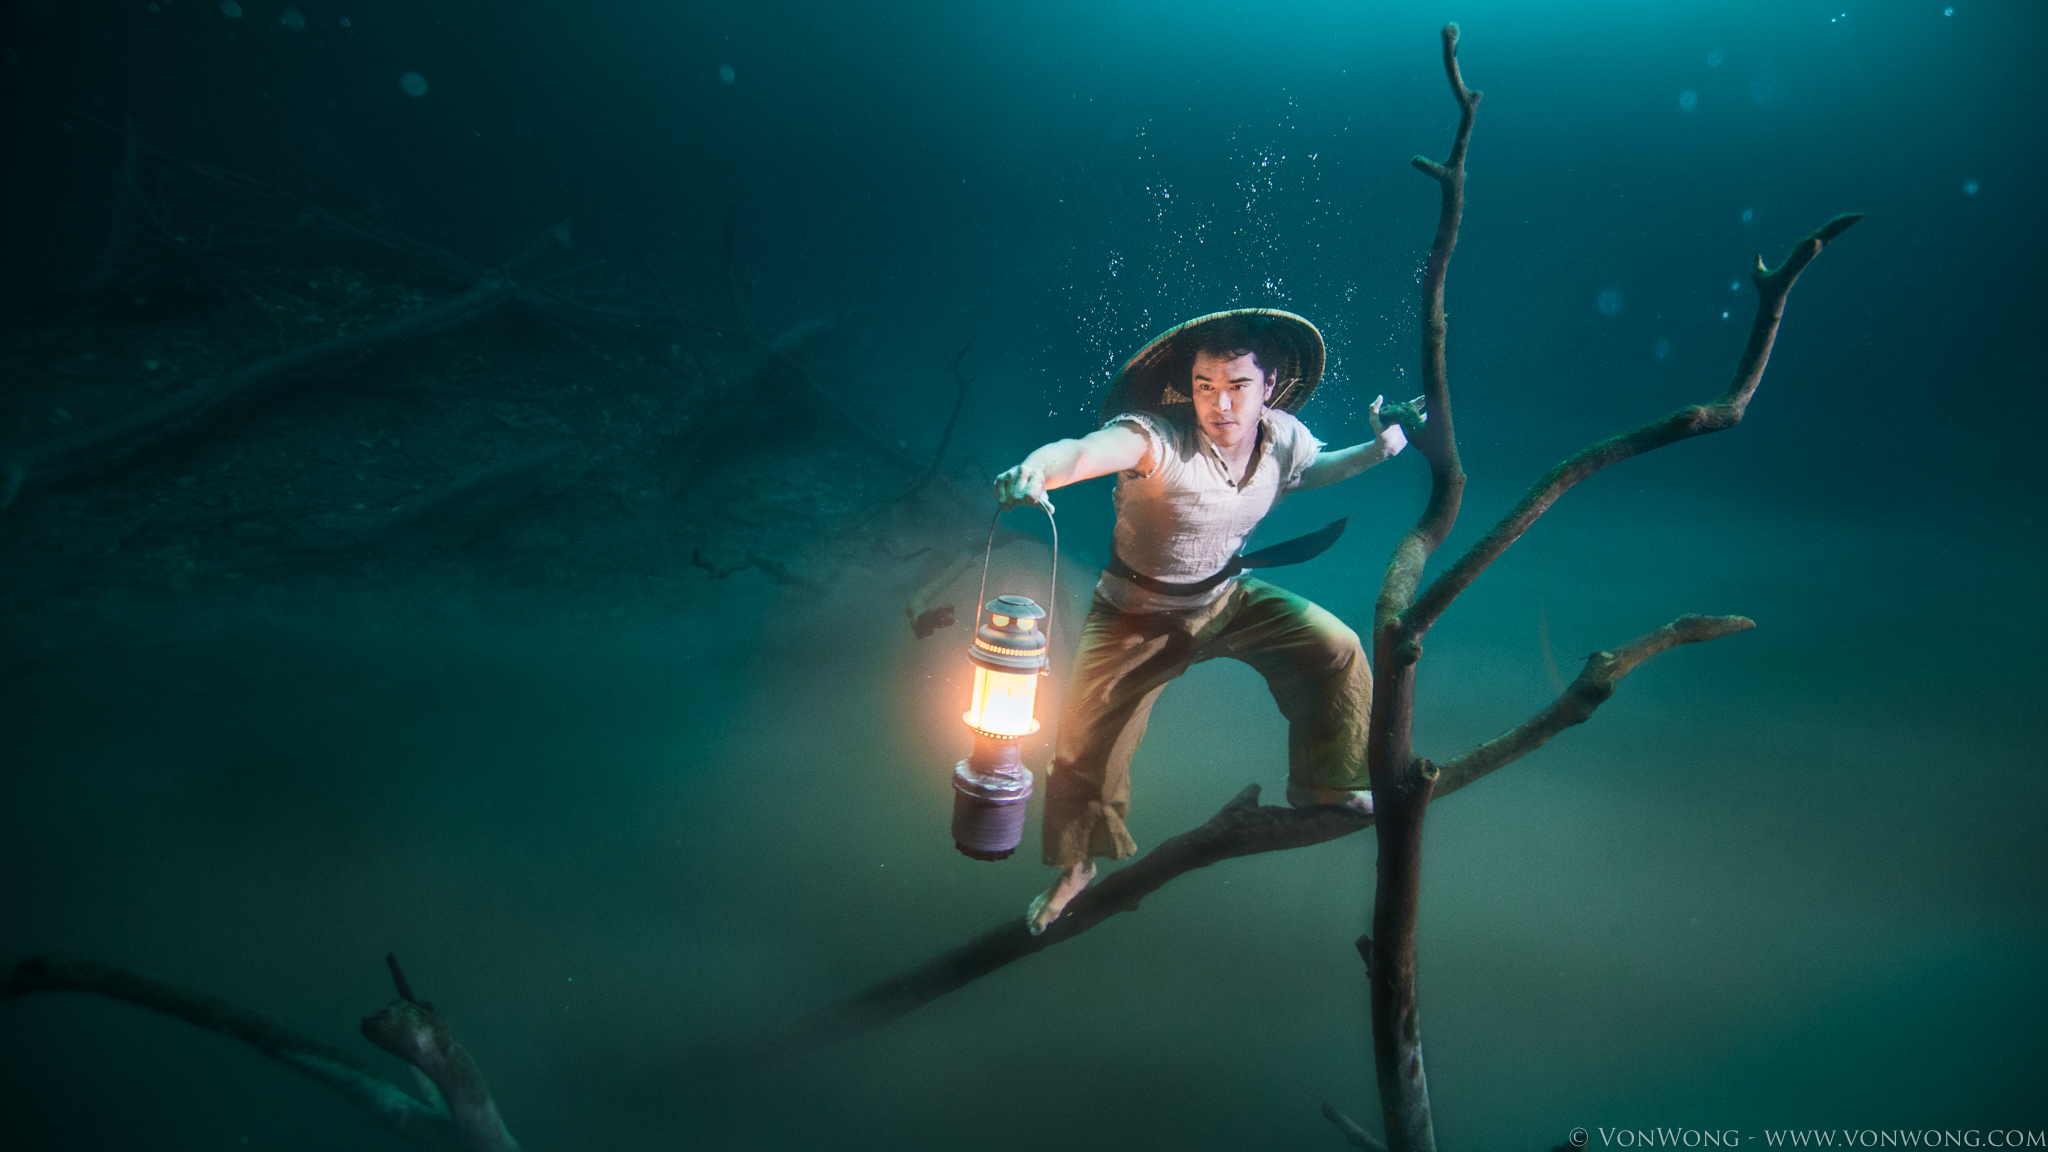 VonWong's Underwater Fisherman with Ballantines